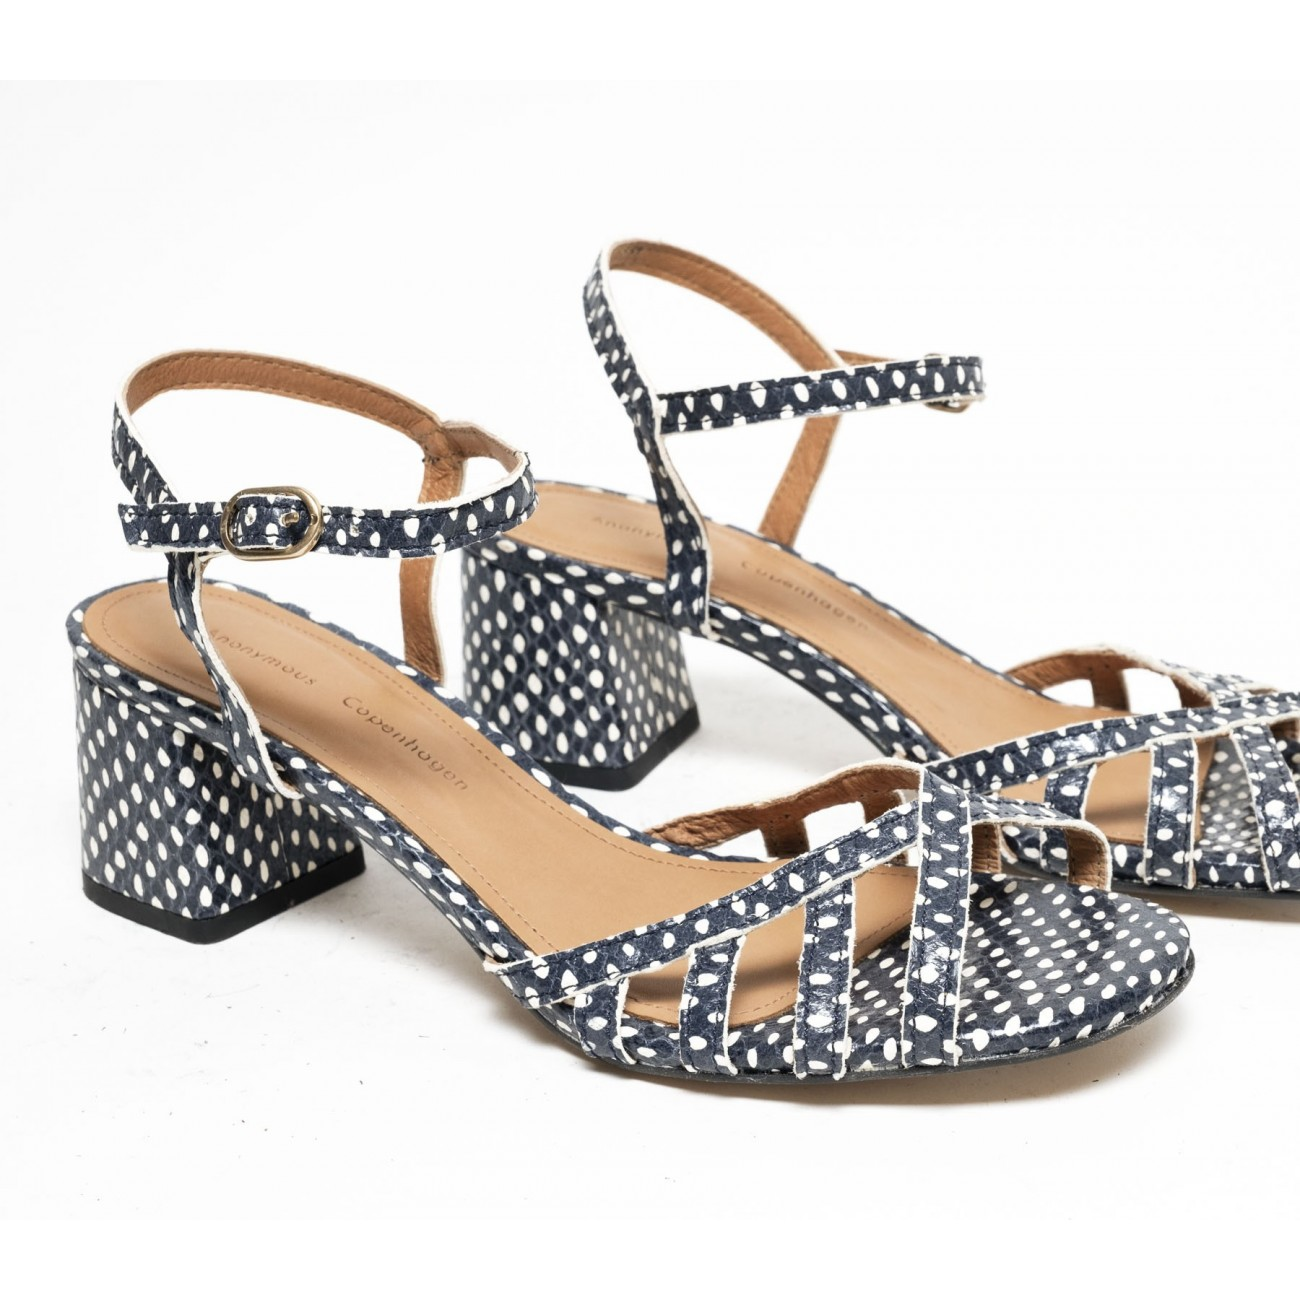 Issi 55 Spotted snake Blue - Size 38